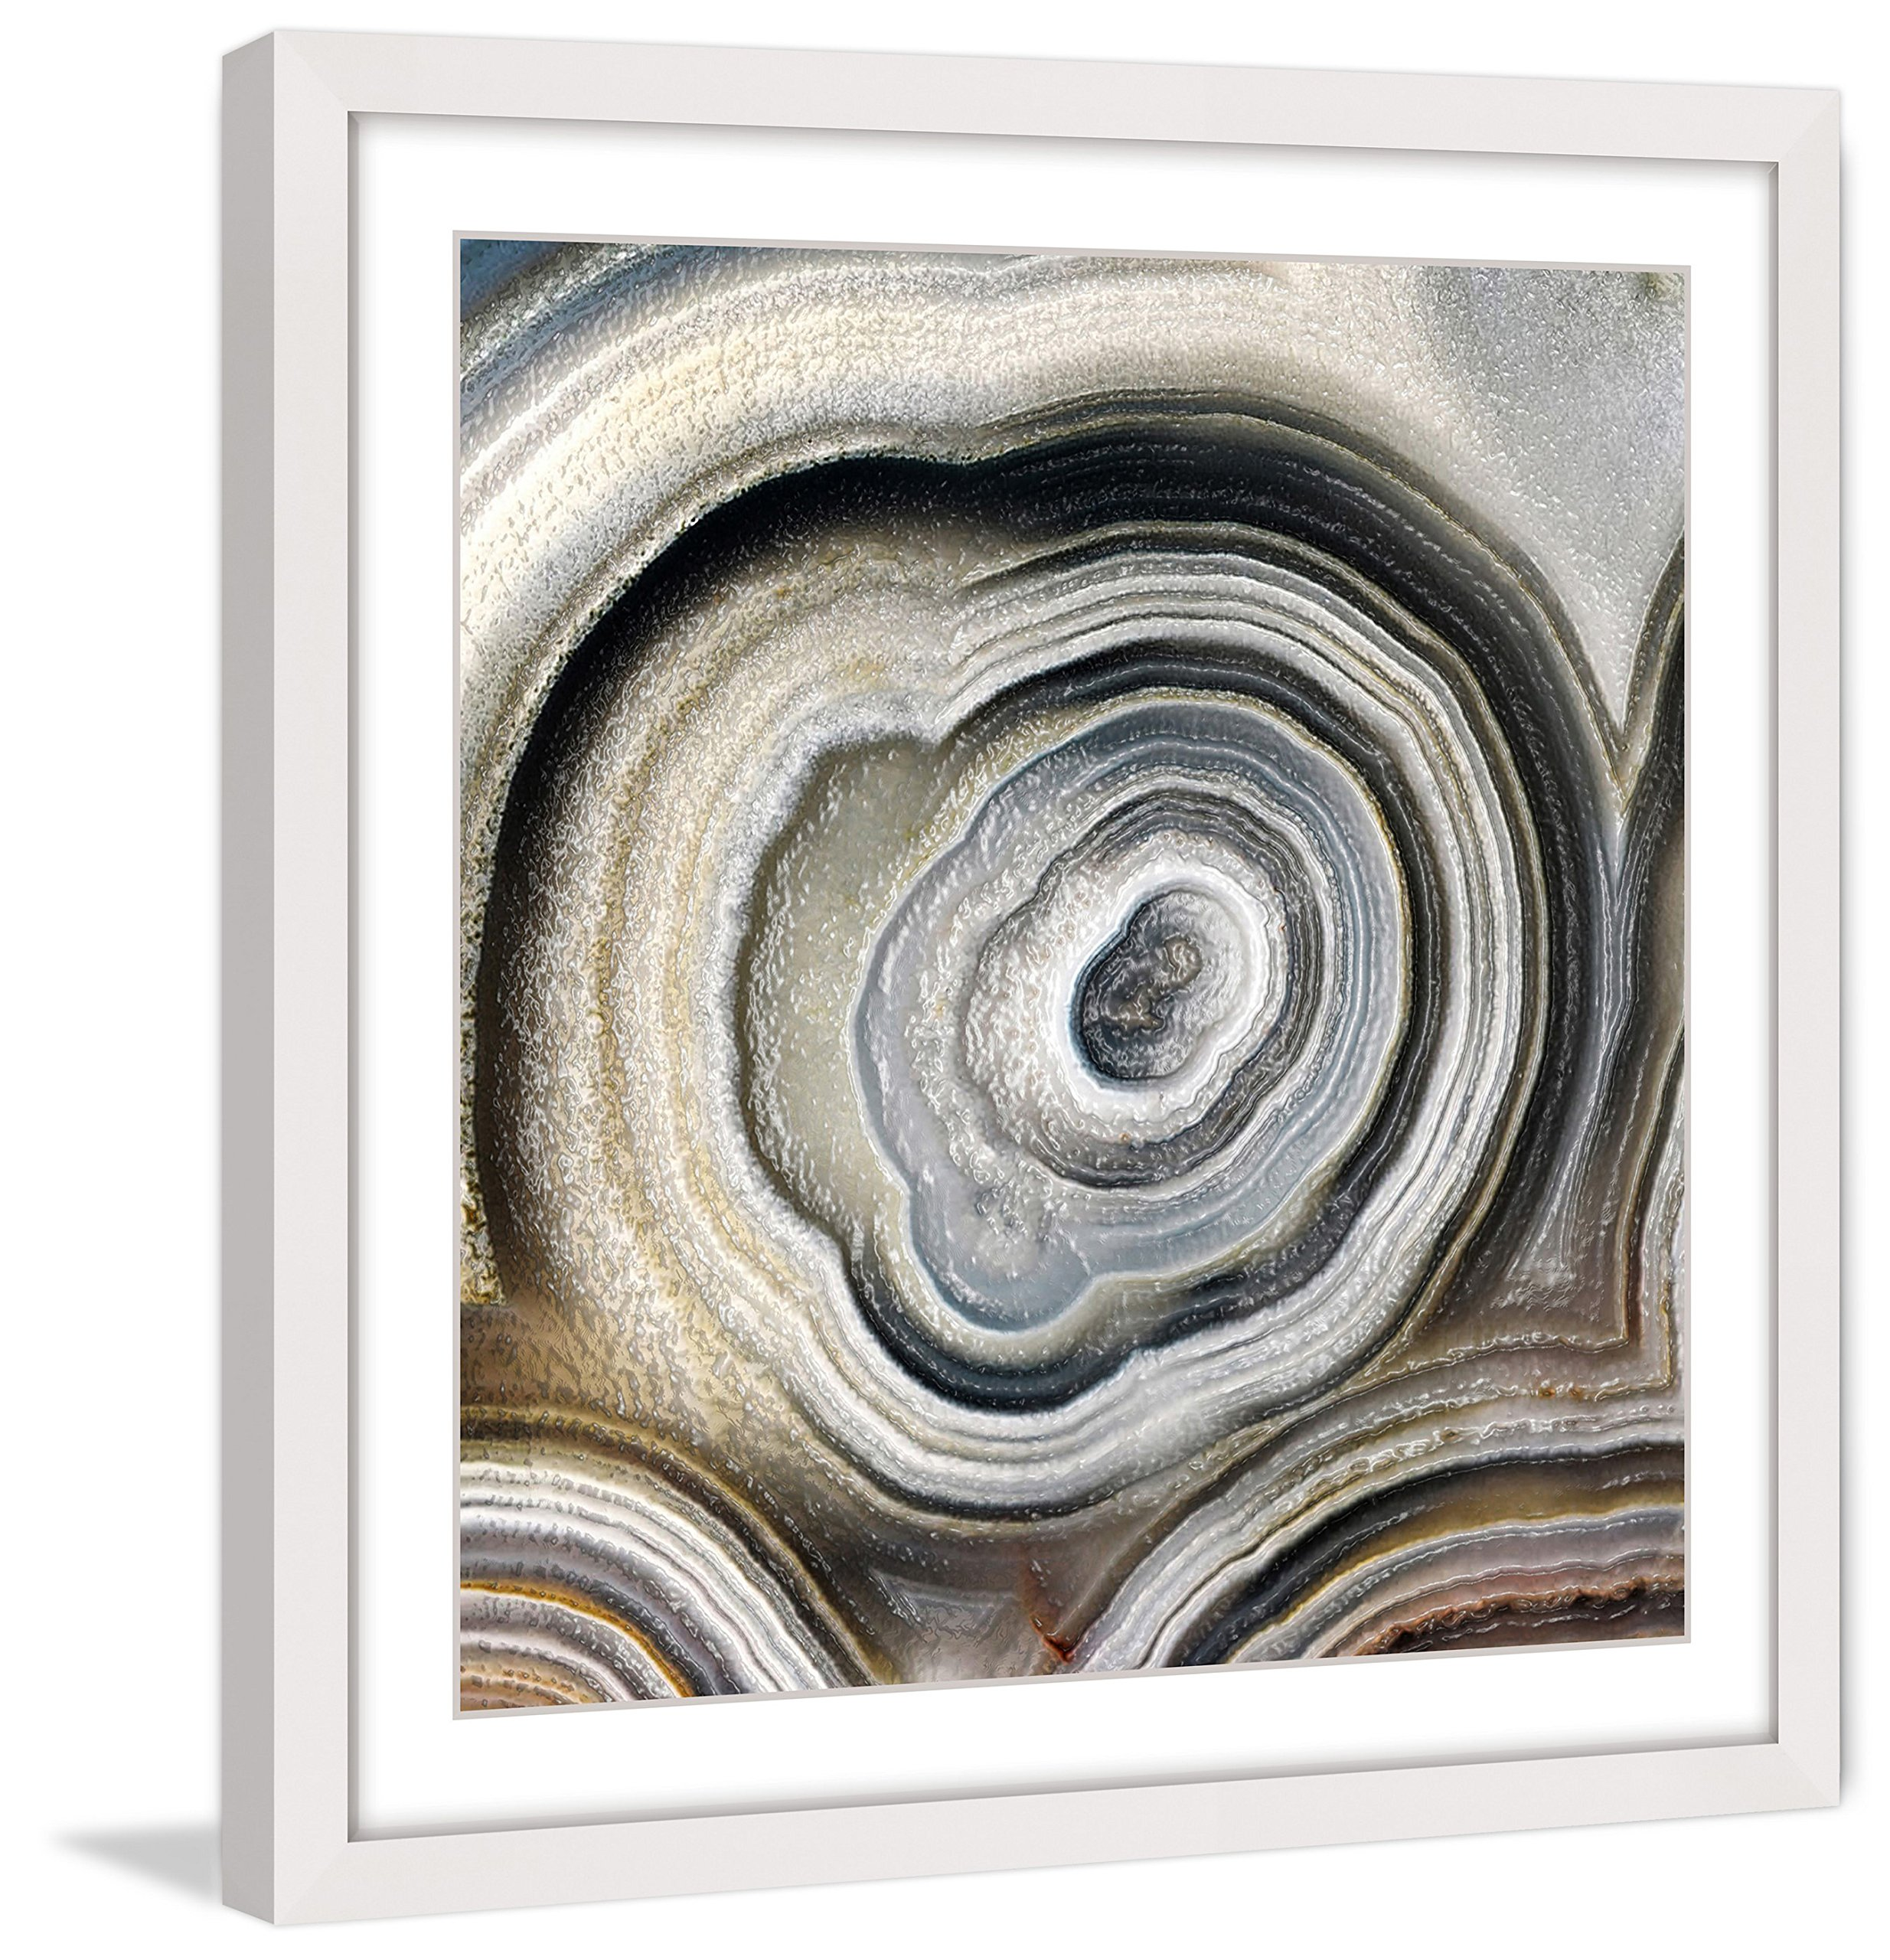 Marmont Hill MH-ABGEO-215-WFP-32 The Eye of The Geode Framed Painting Print,Multicolor,32x32 by Marmont Hill